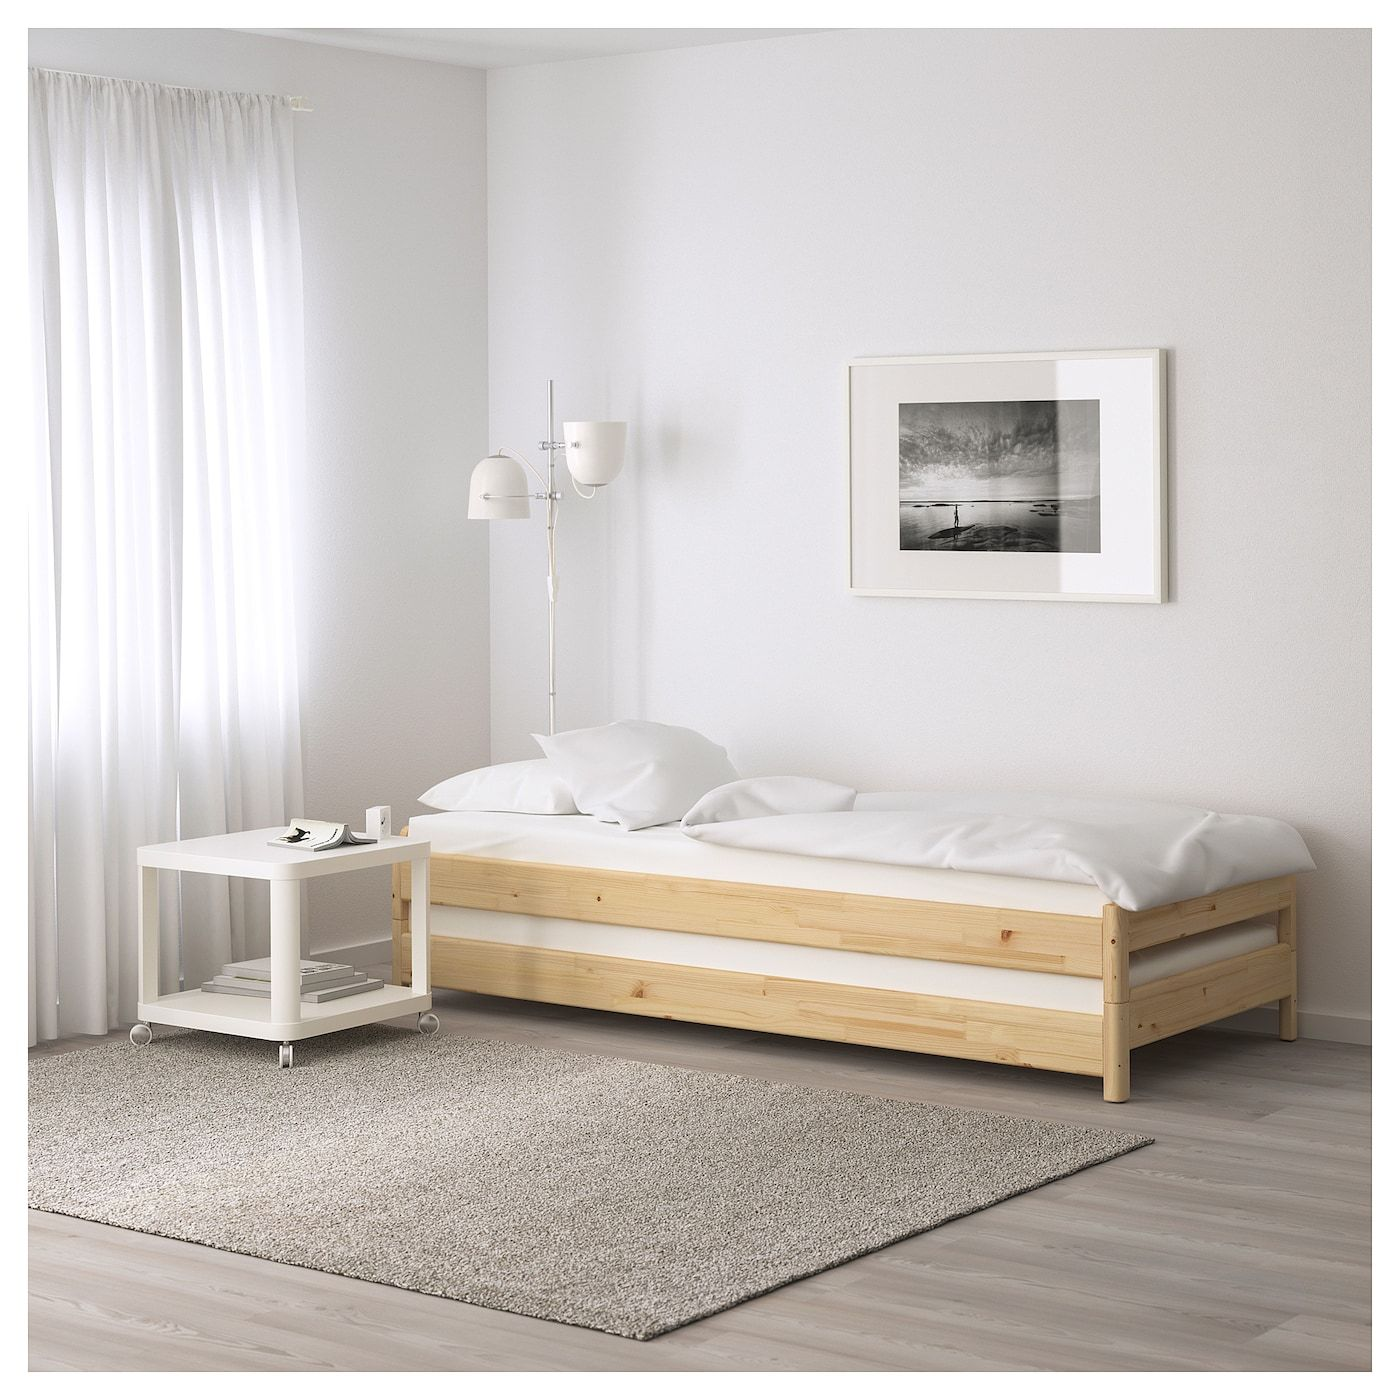 Ikea Utaker Stackable Bed With 2 Mattresses Ikea Bed Twin Bed